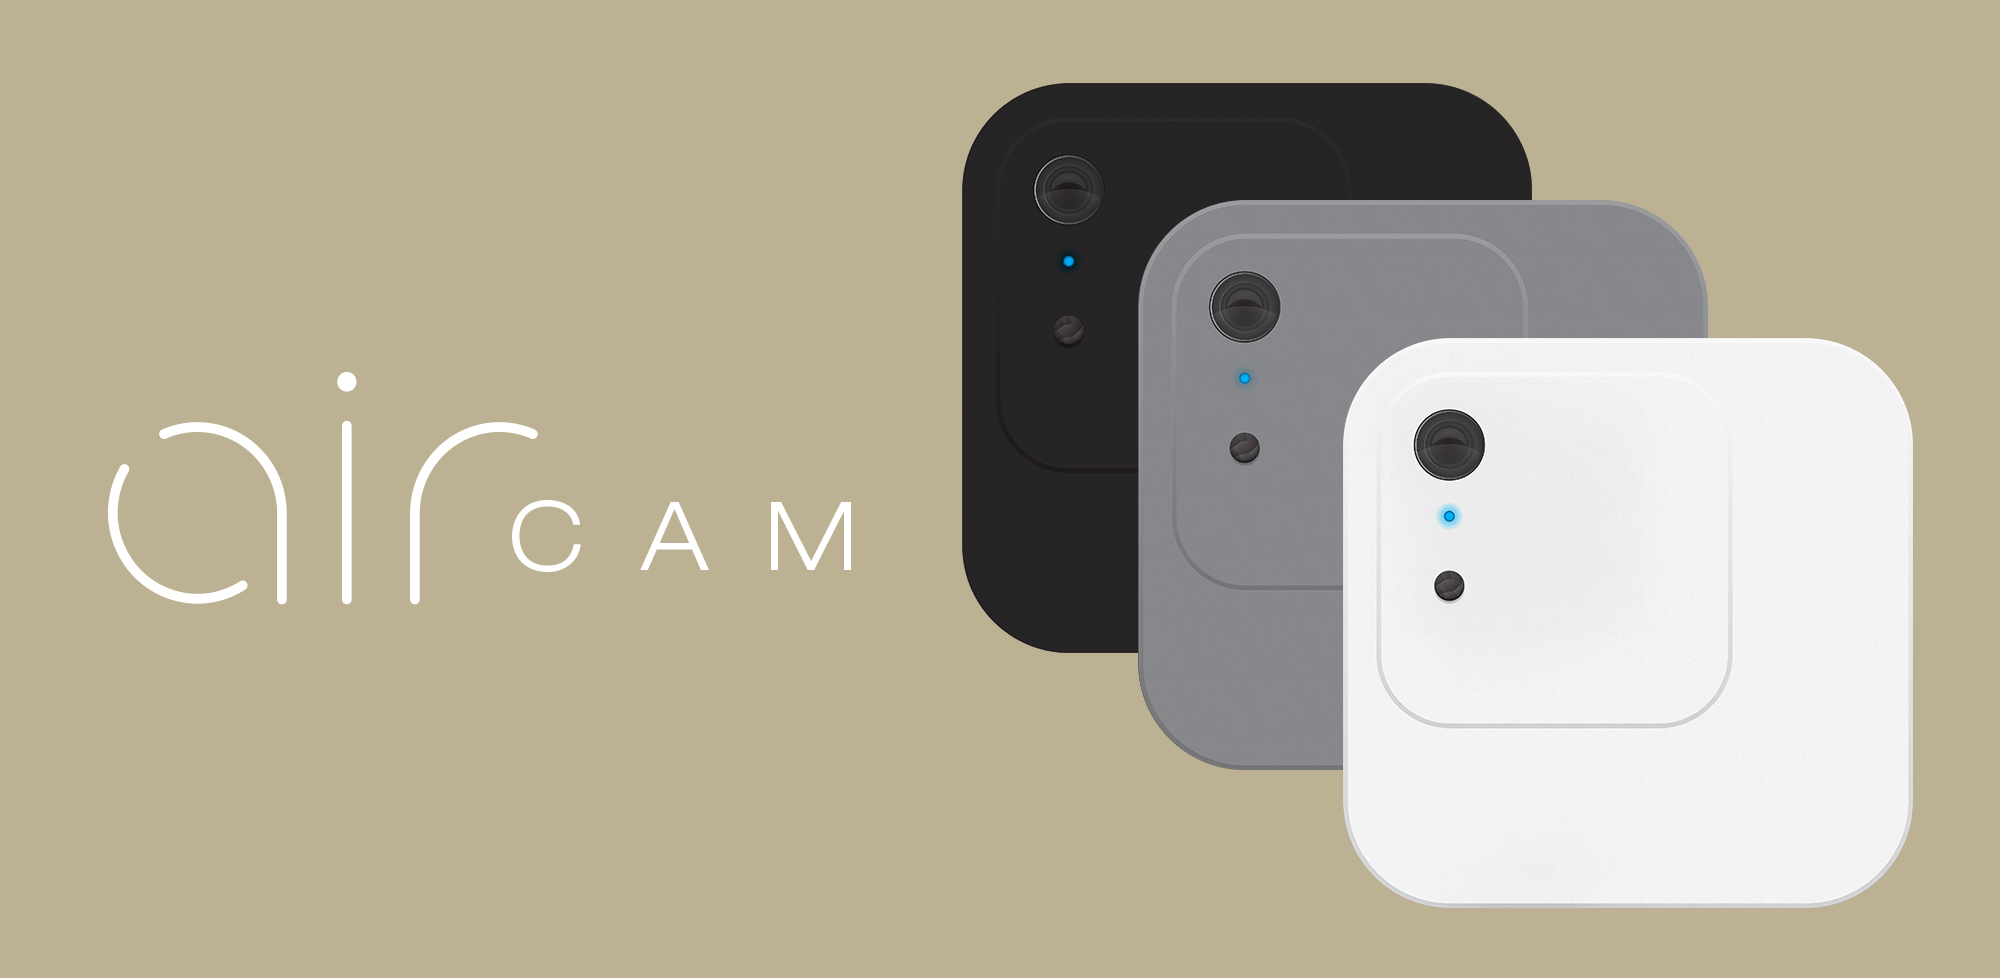 Air Cam - This is a side project I worked on to create a wirelessly charged adhesive camera that streams video and notifications to your phone.Branding, Industrial Design, Web Design